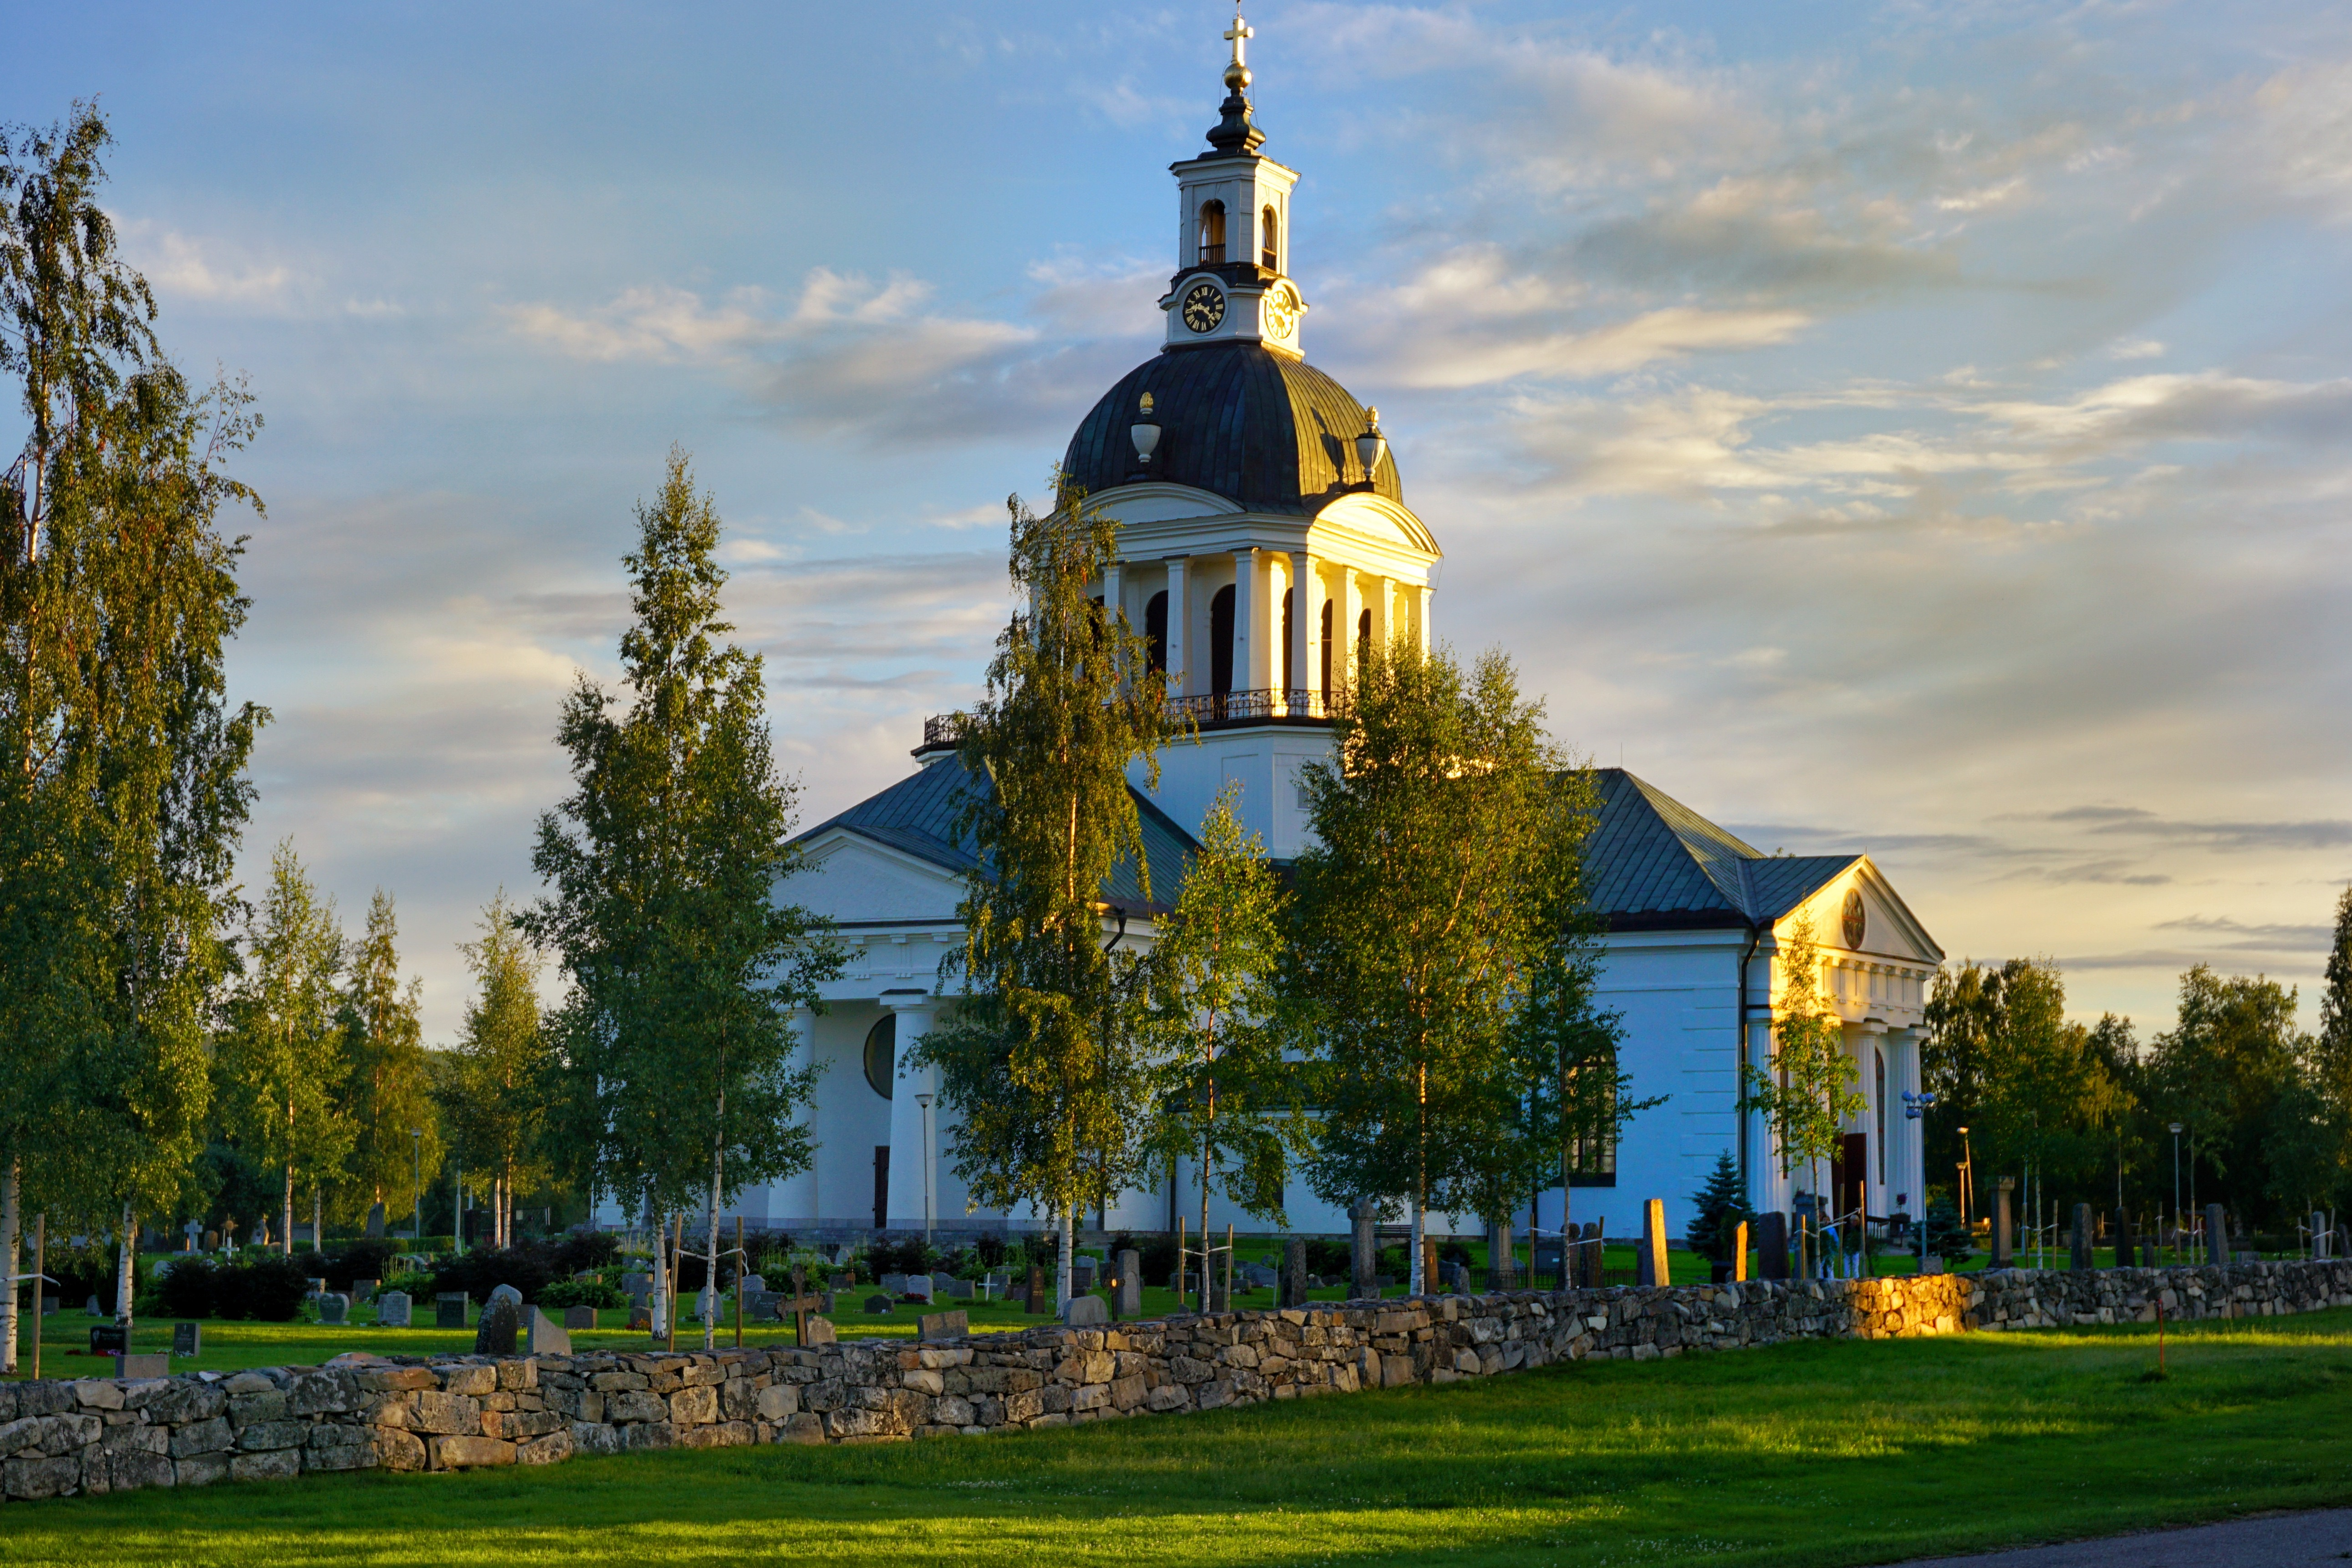 Skelleftea Swedish Lapland Country Church